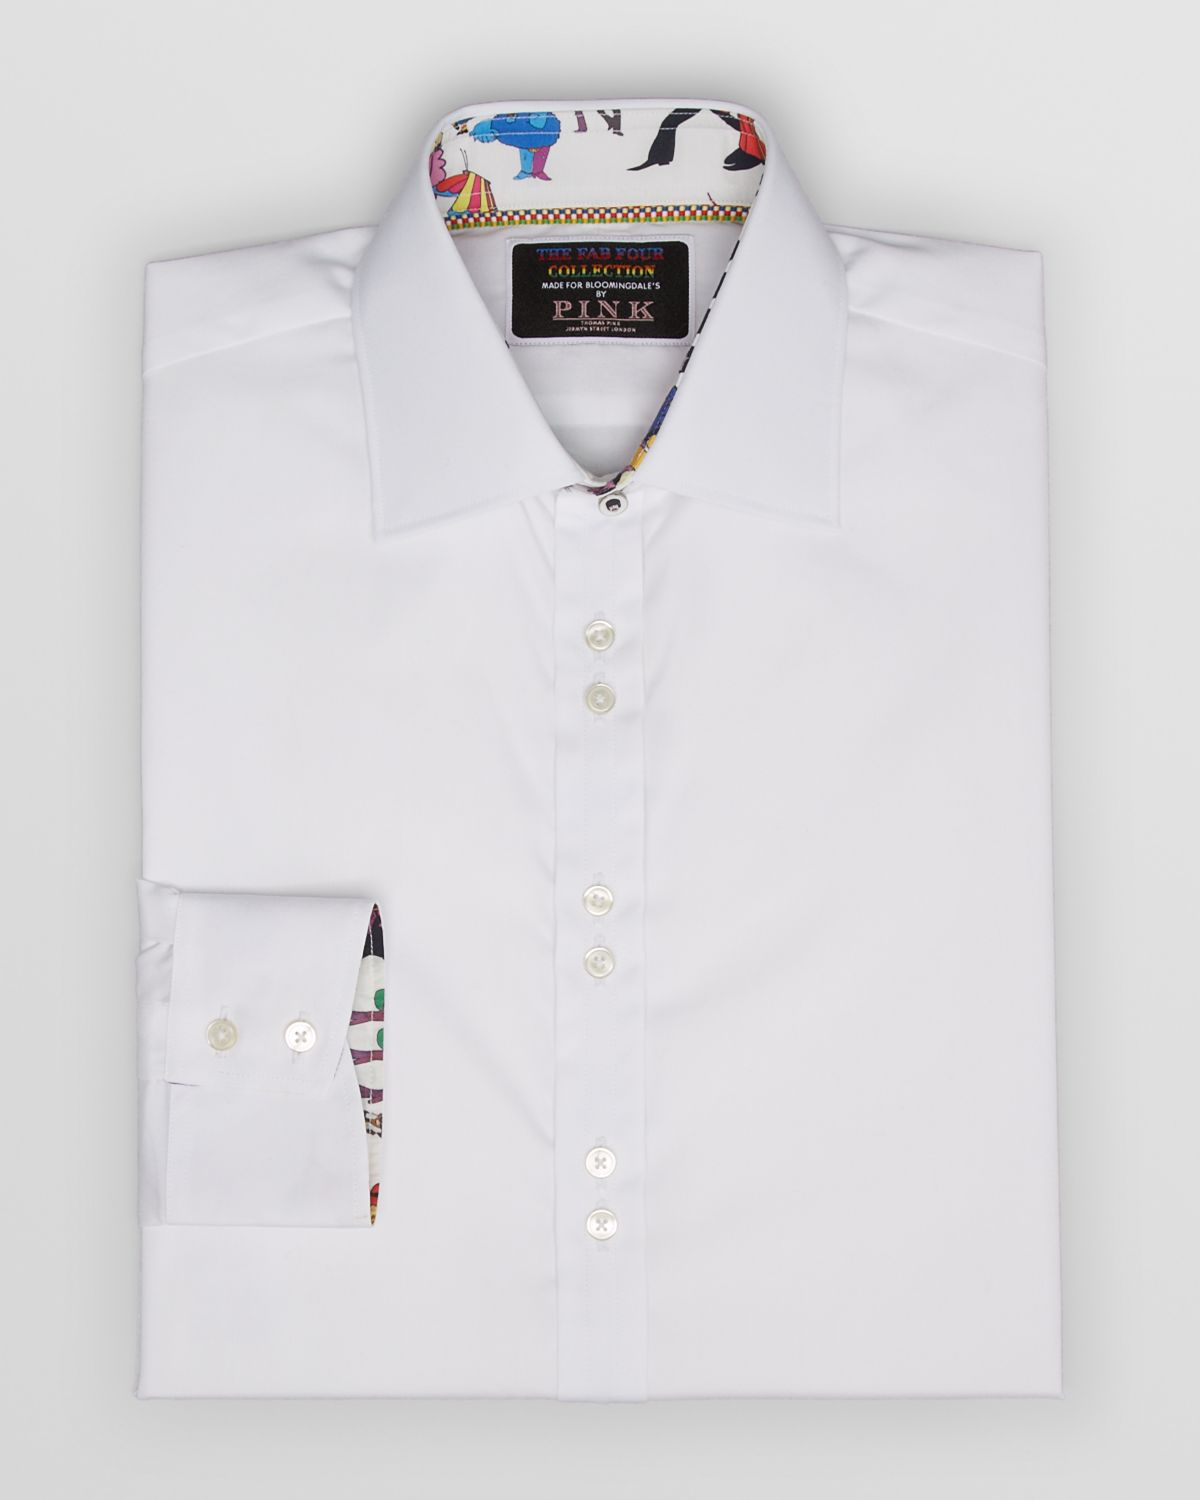 Thomas pink Fab Four Collection Solid Dress Shirt Contemporary Fit ...